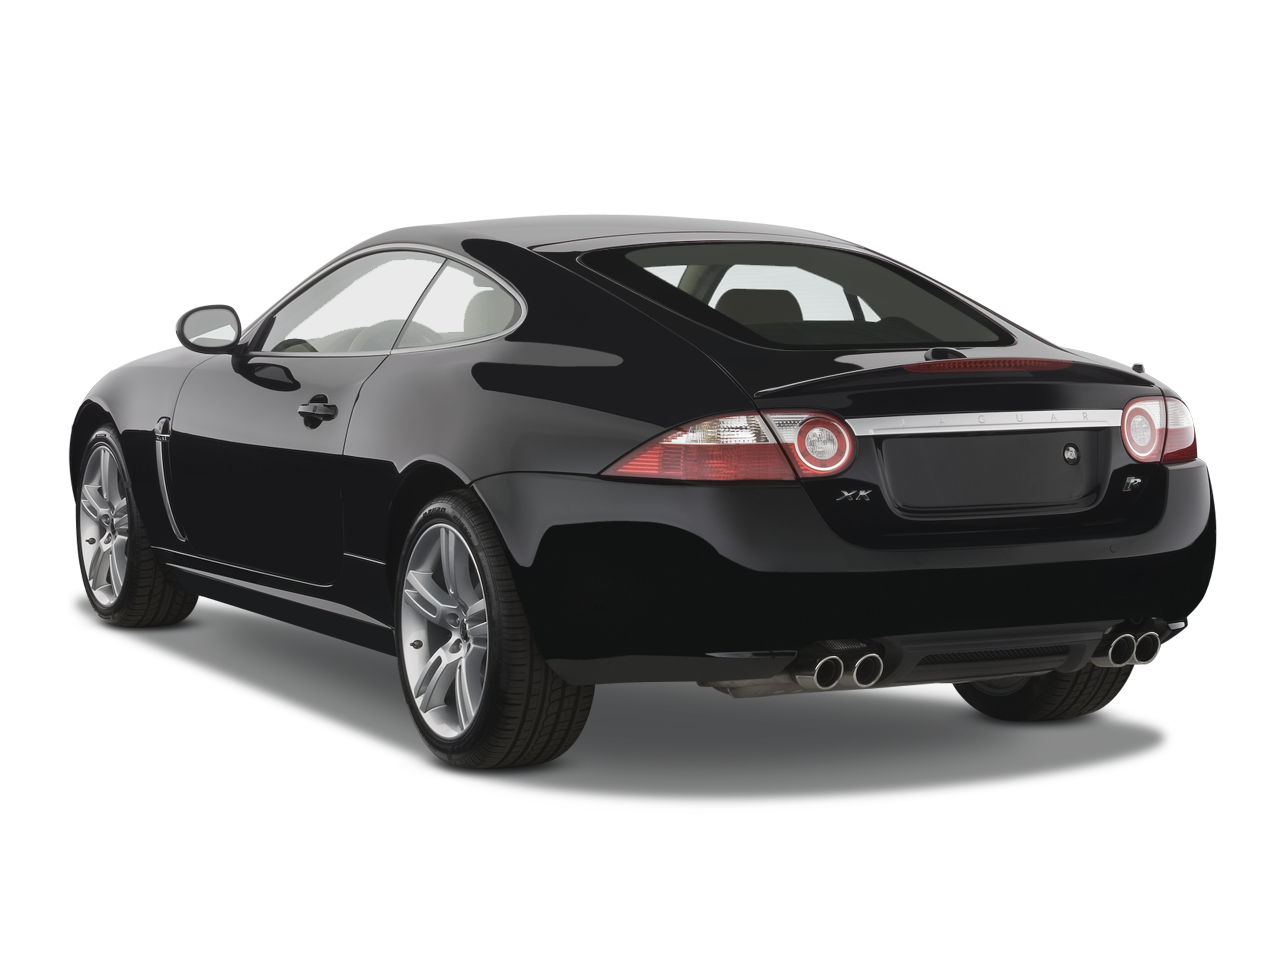 2007 Jaguar XKR Coupe and Convertible - New and Future ...